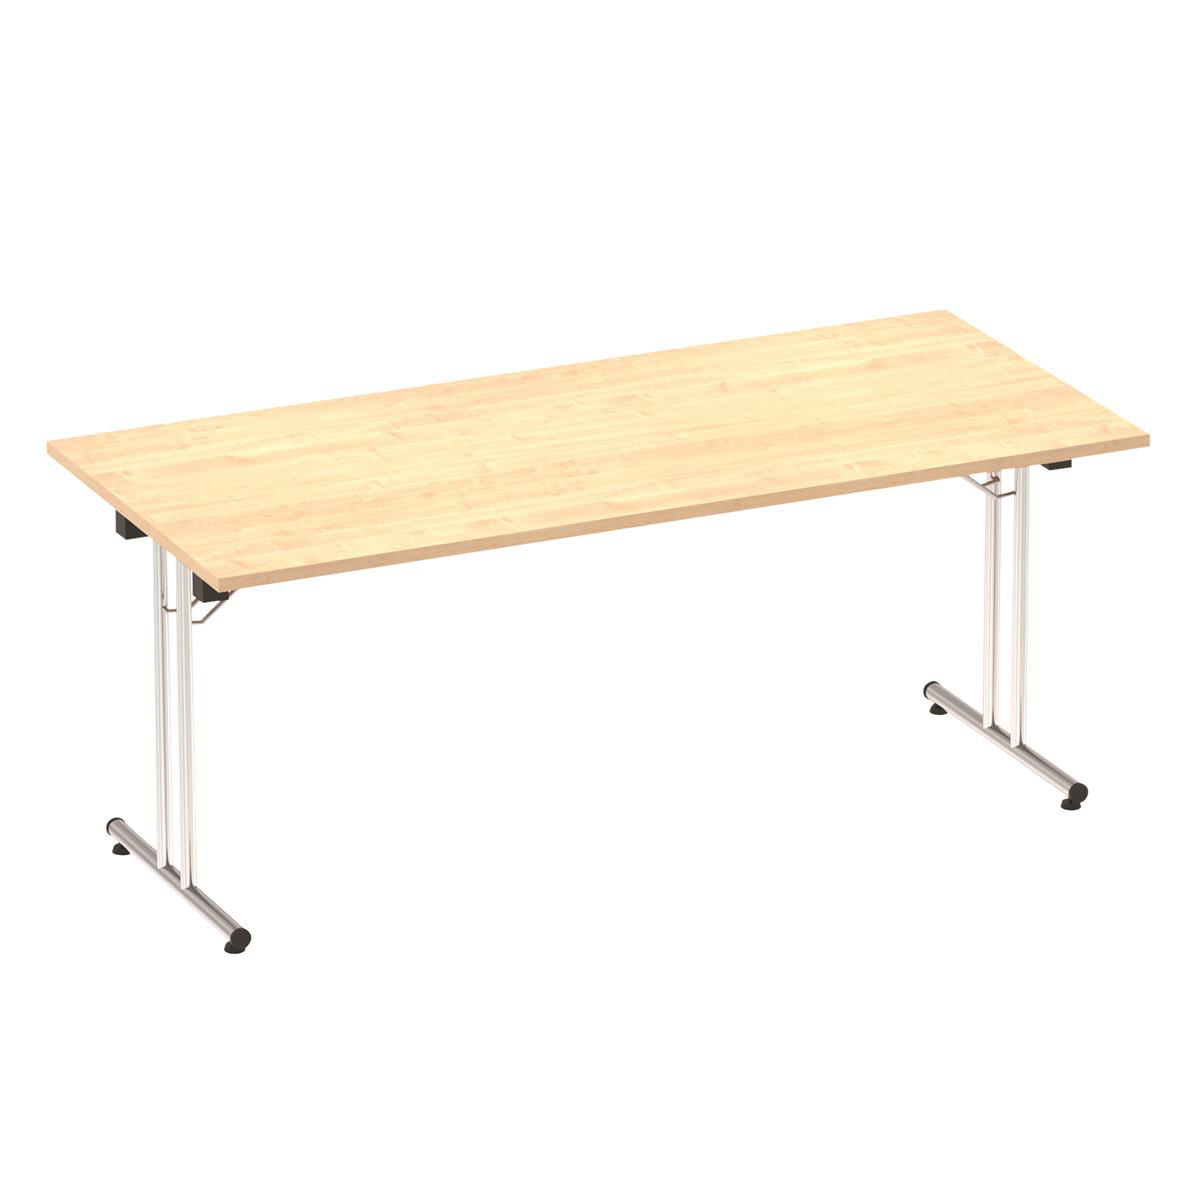 Sonix Rectangular Chrome Leg Folding Meeting Table 1800x800mm Maple Ref I000719